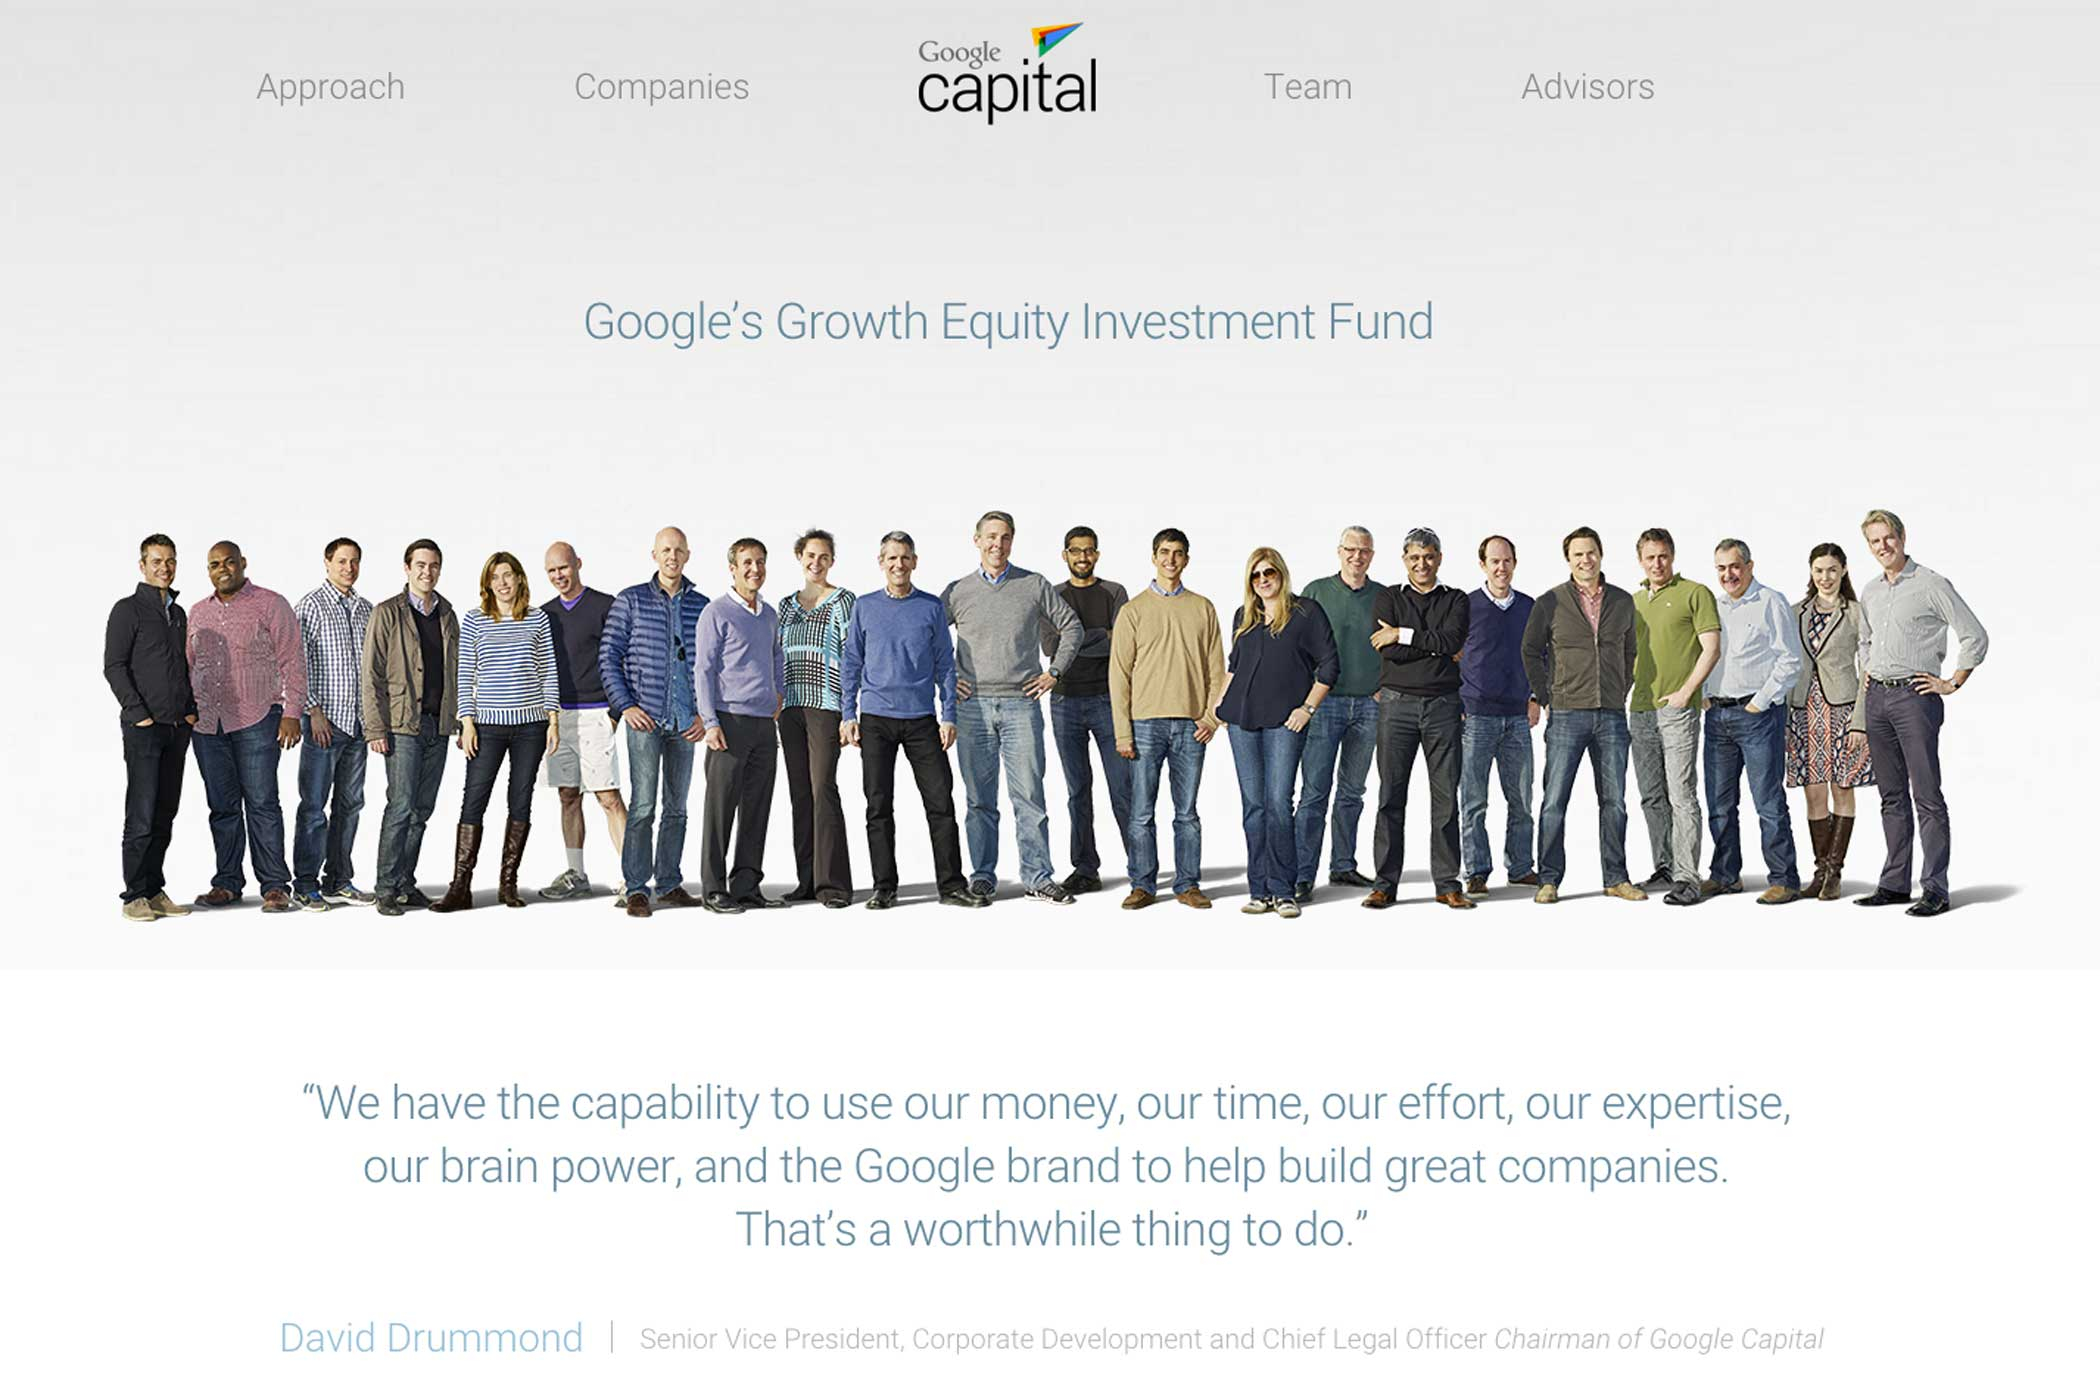 Capital: This investment arm focuses on late-state growth companies, and like Google Ventures, operates independently of Google's consumer-product businesses.